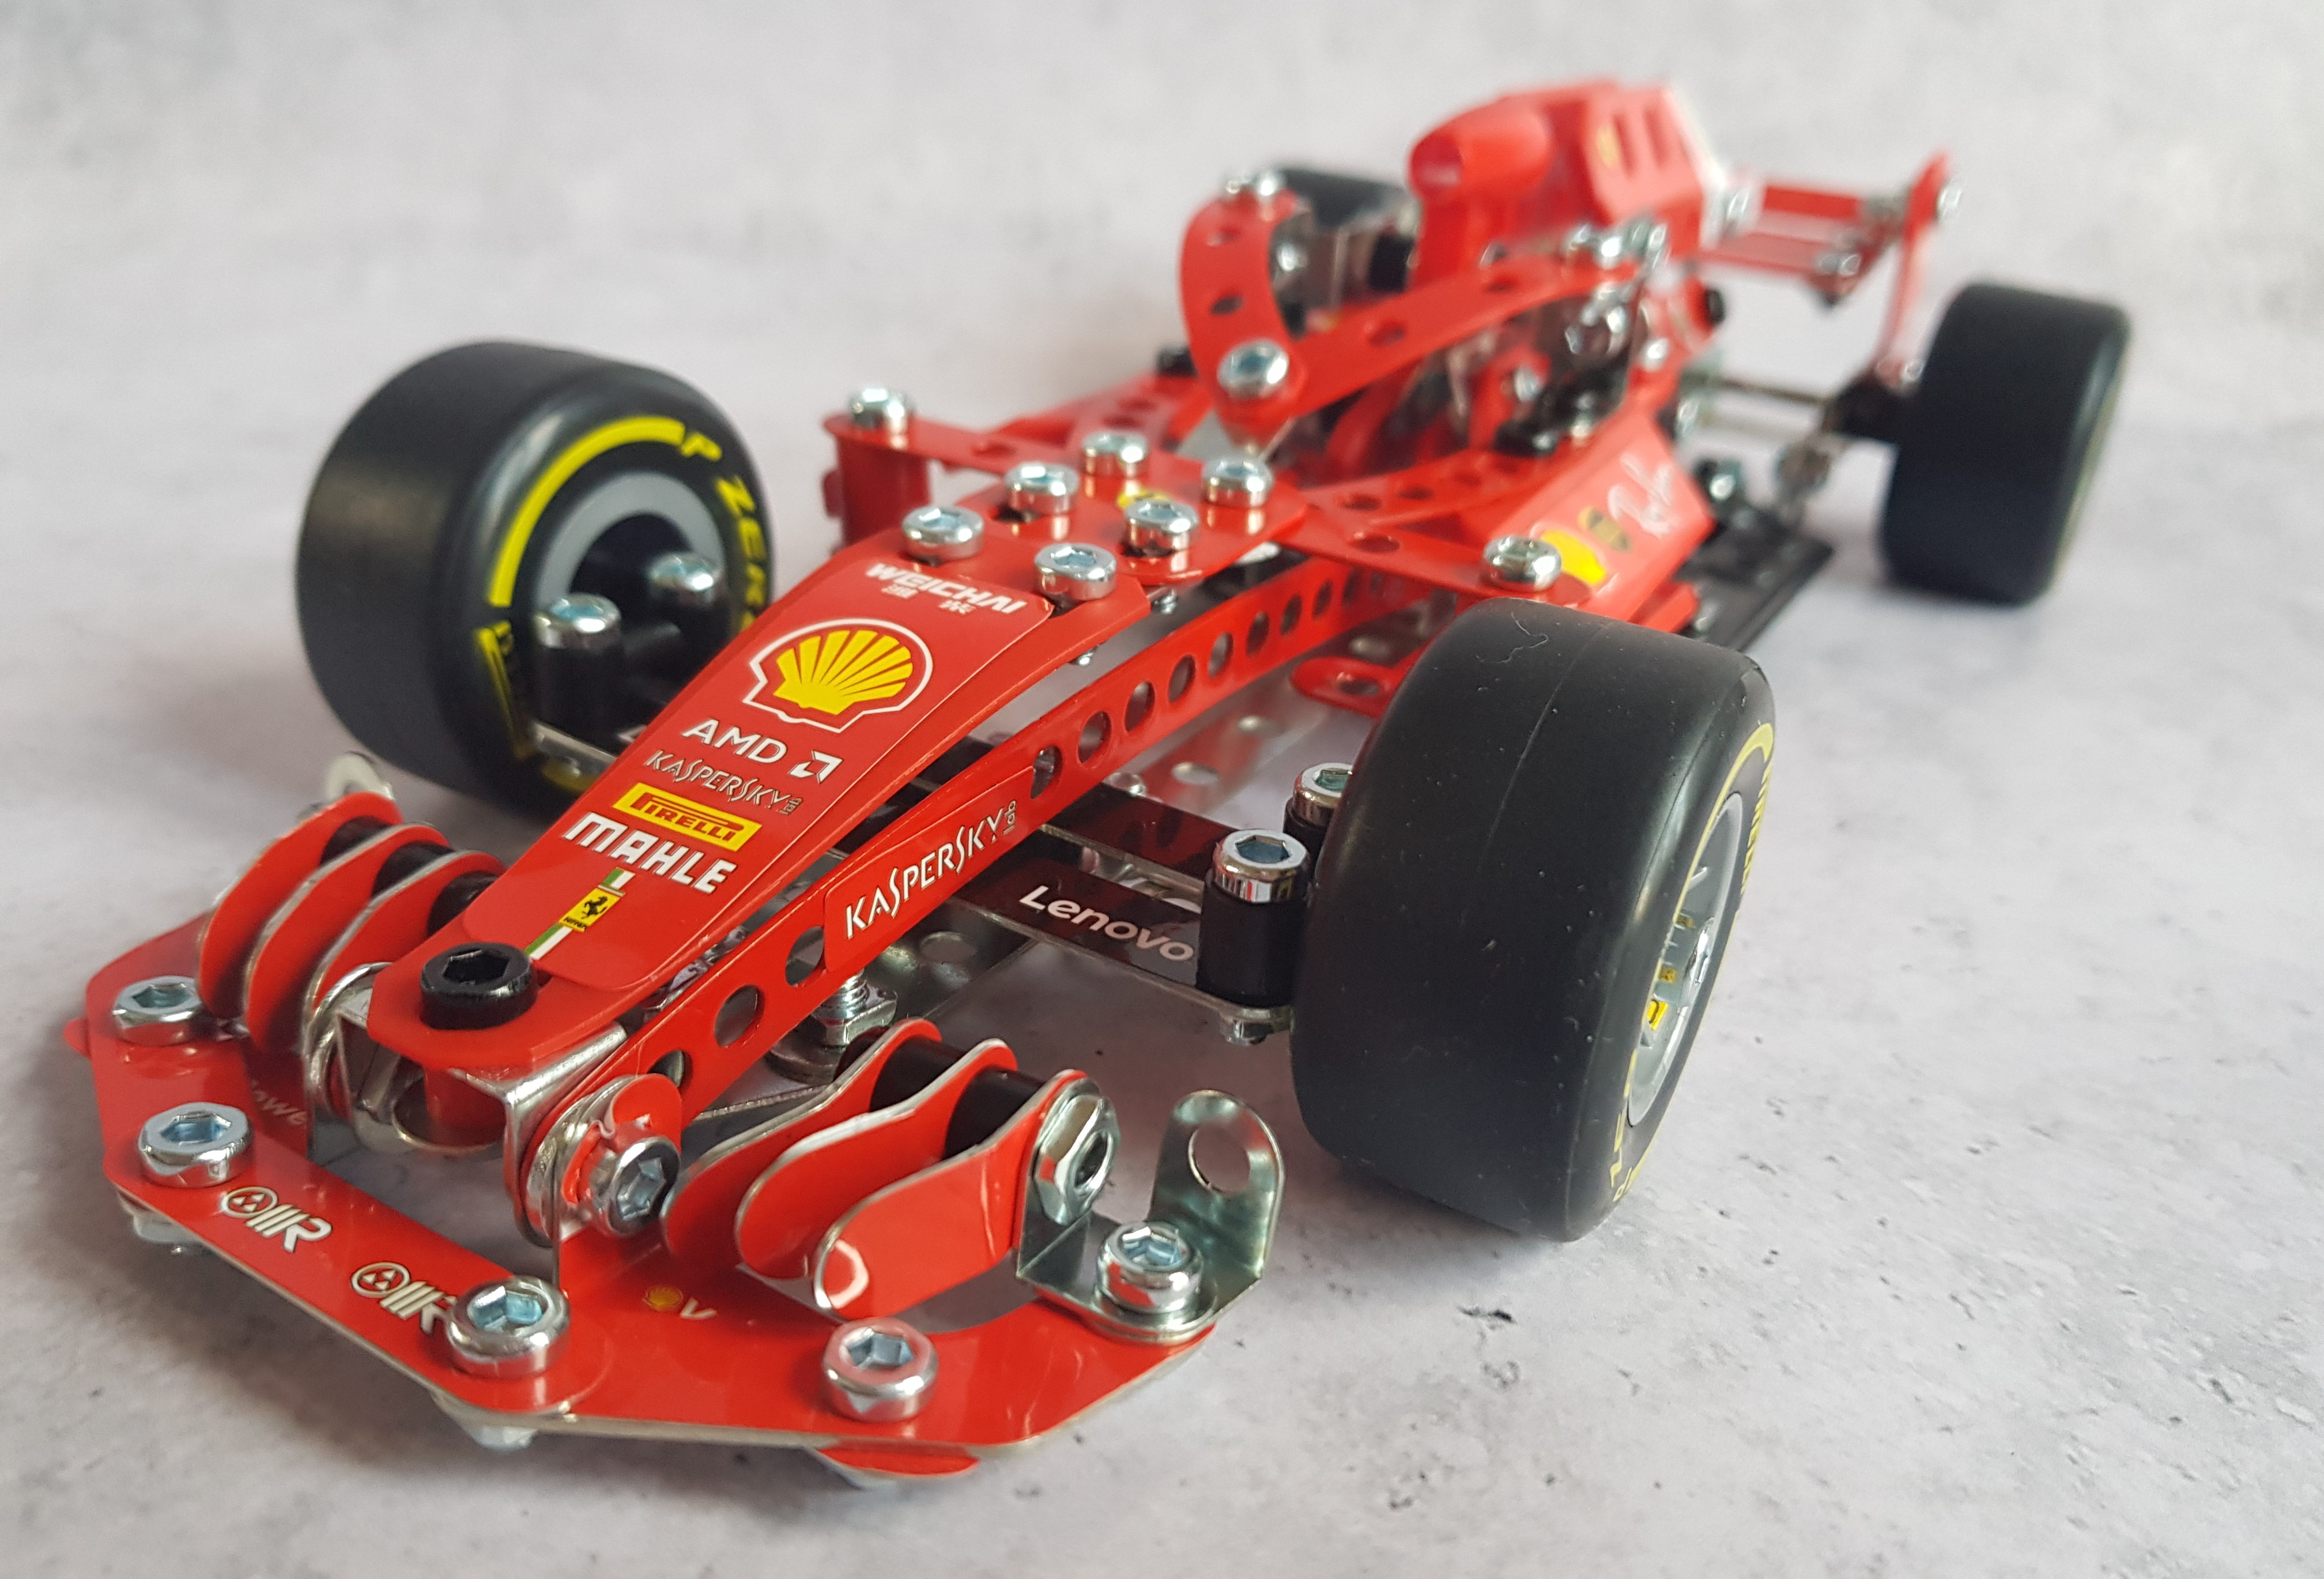 Meccano Ferrari Formula 1 vehicle front view